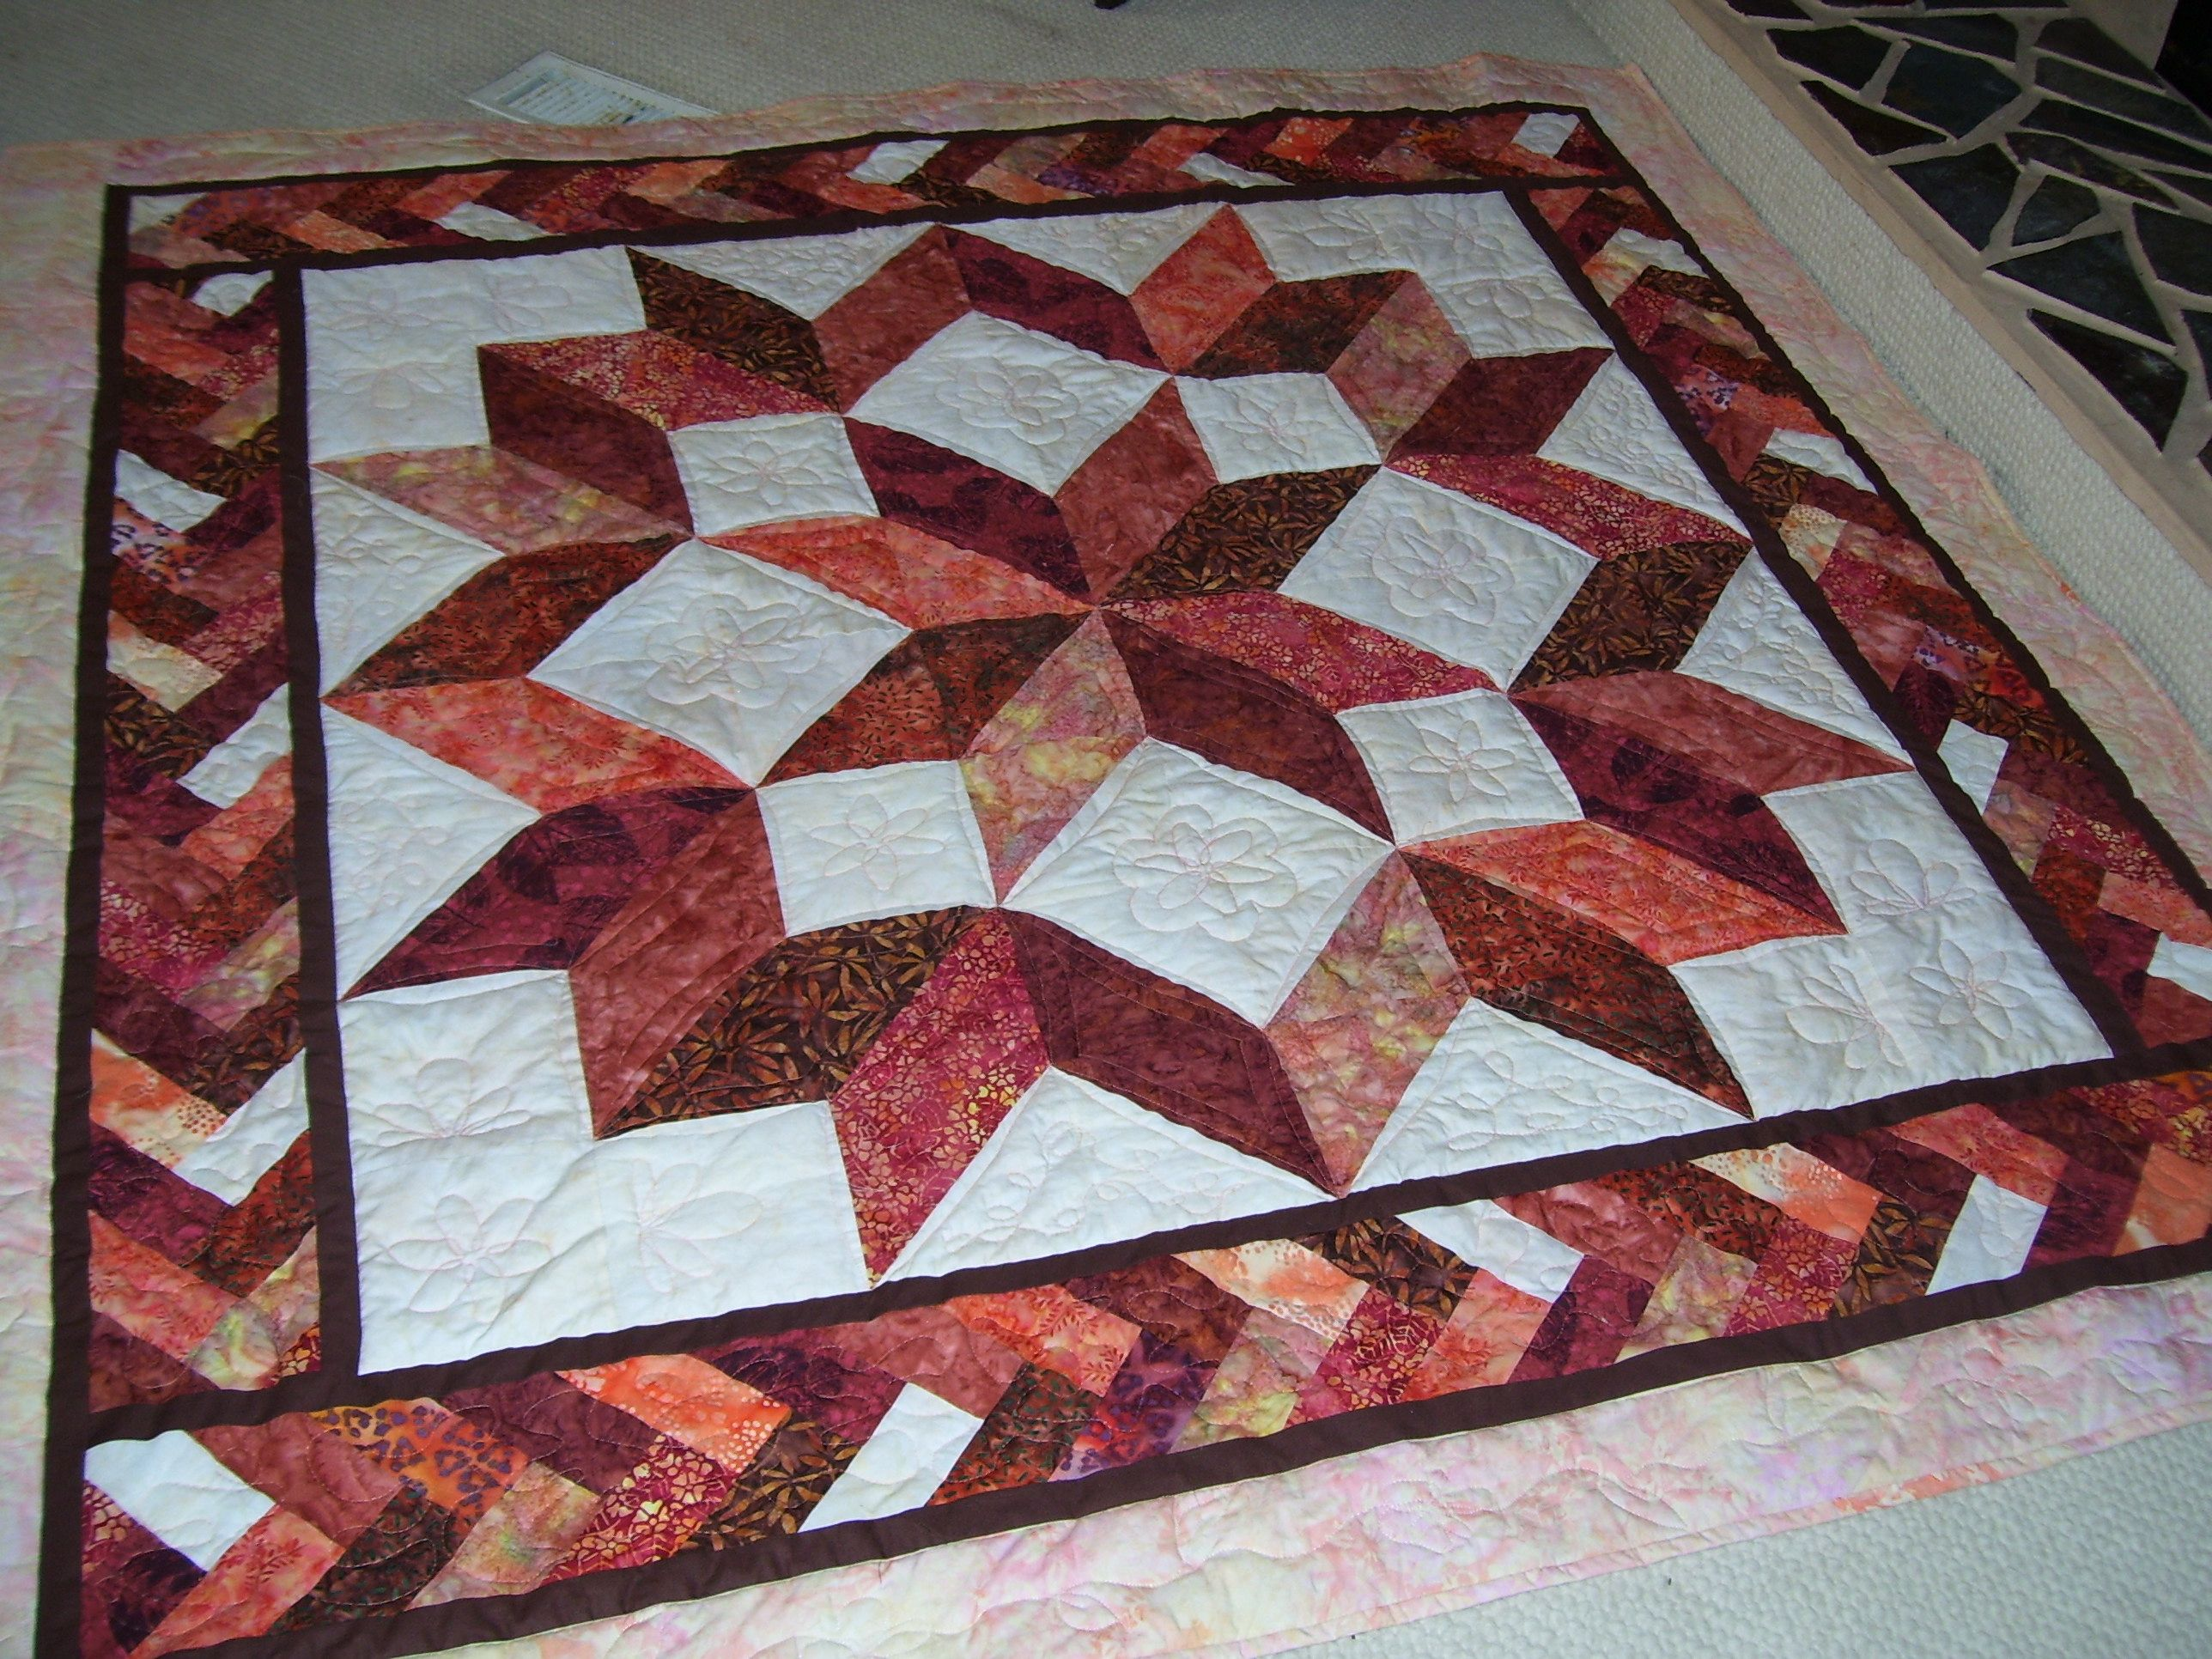 Carpenter's Star with braided borders | Quilting | Pinterest ... : quilt borders pinterest - Adamdwight.com